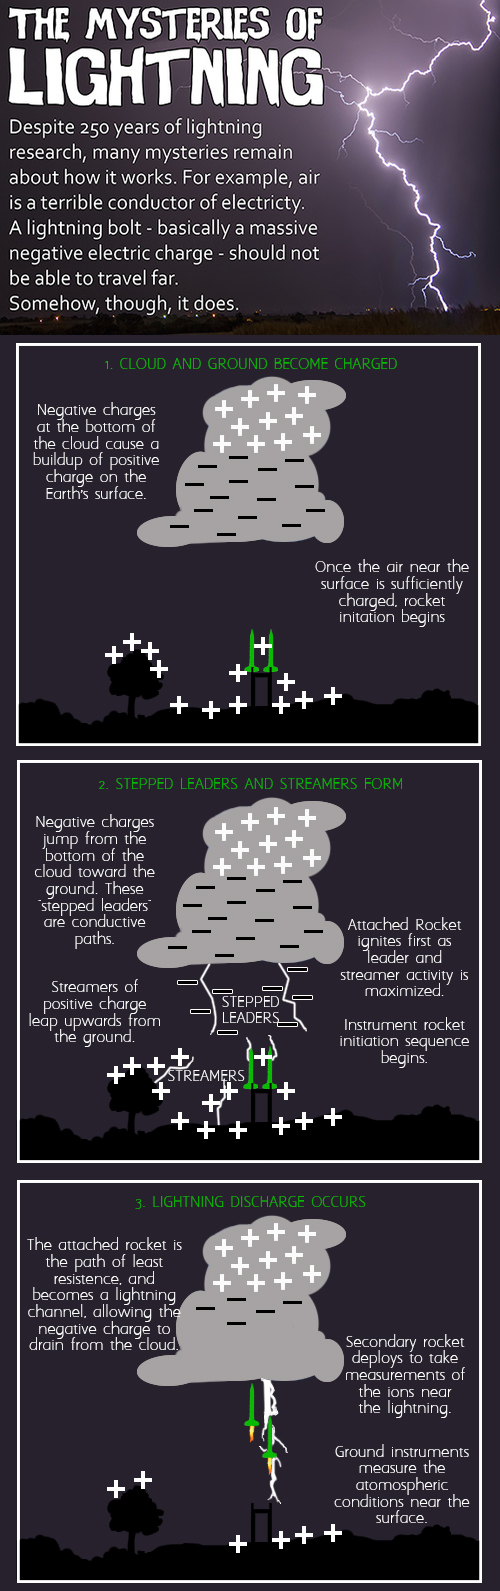 Infographic: Negative charged, rocket induced lightning initiation